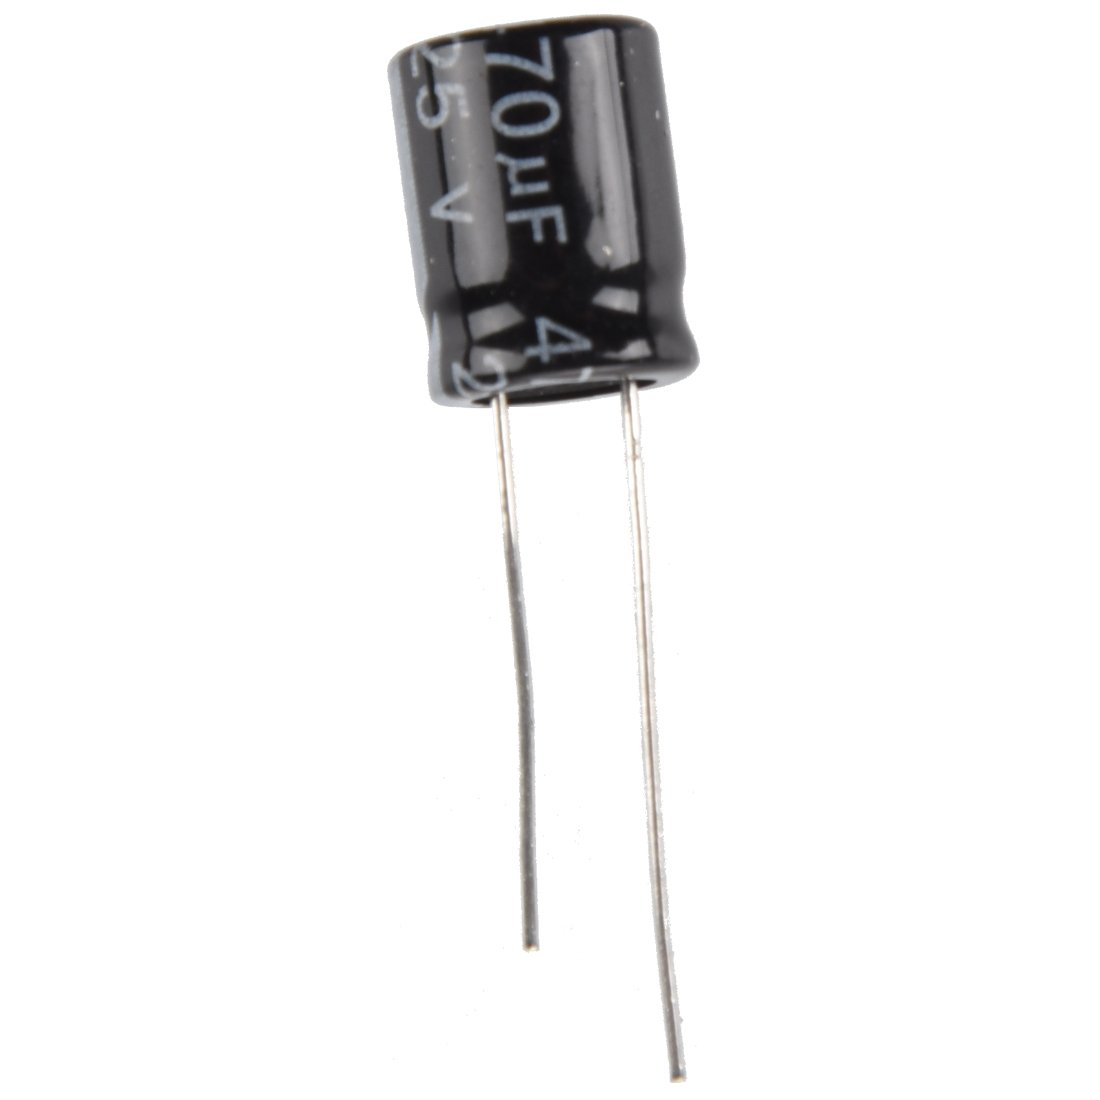 50 Pcs 470uF 35V Aluminum Electrolytic Capacitors 10x13mm SODIAL R